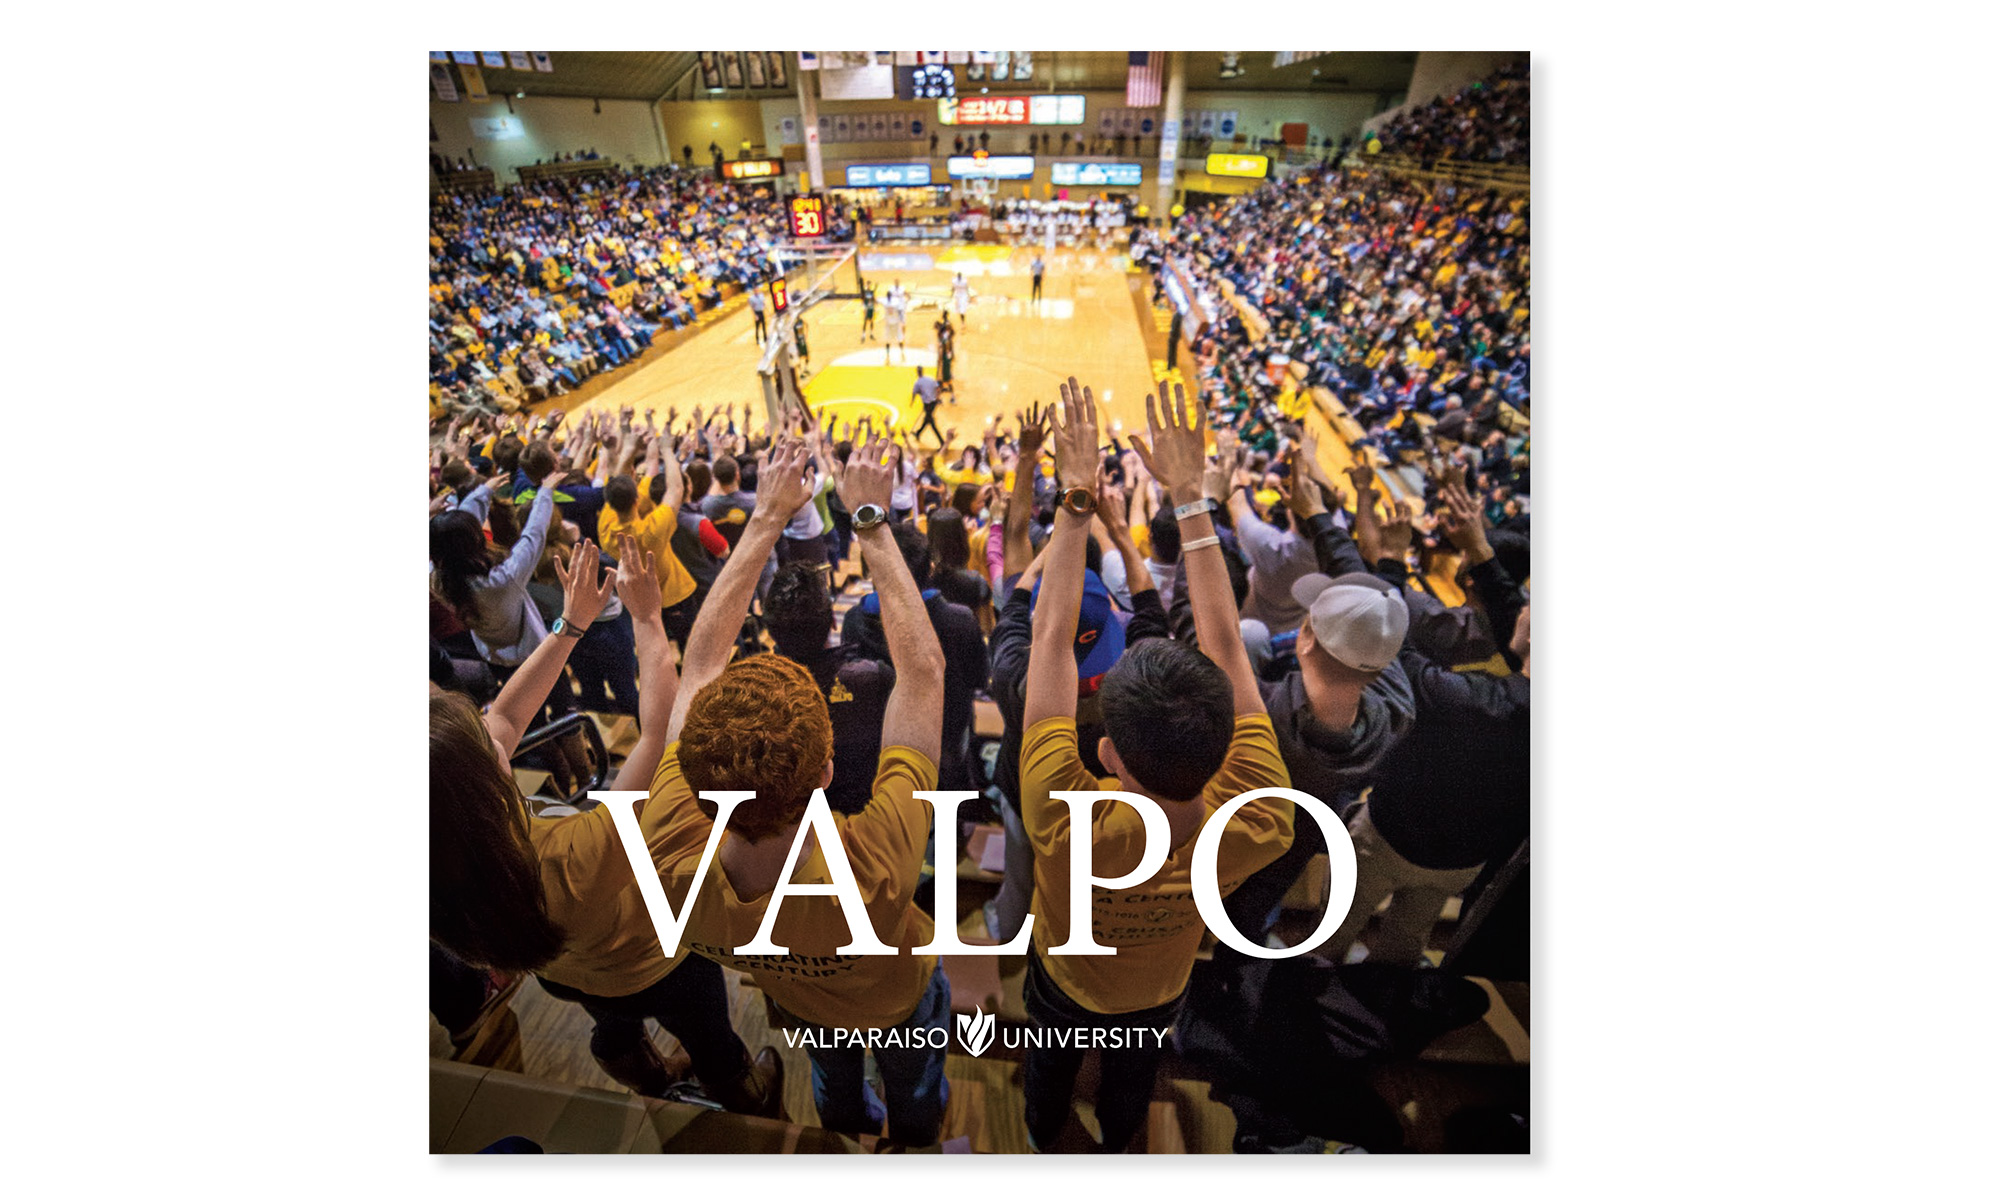 Brochure cover showing crowd at a basketball game.